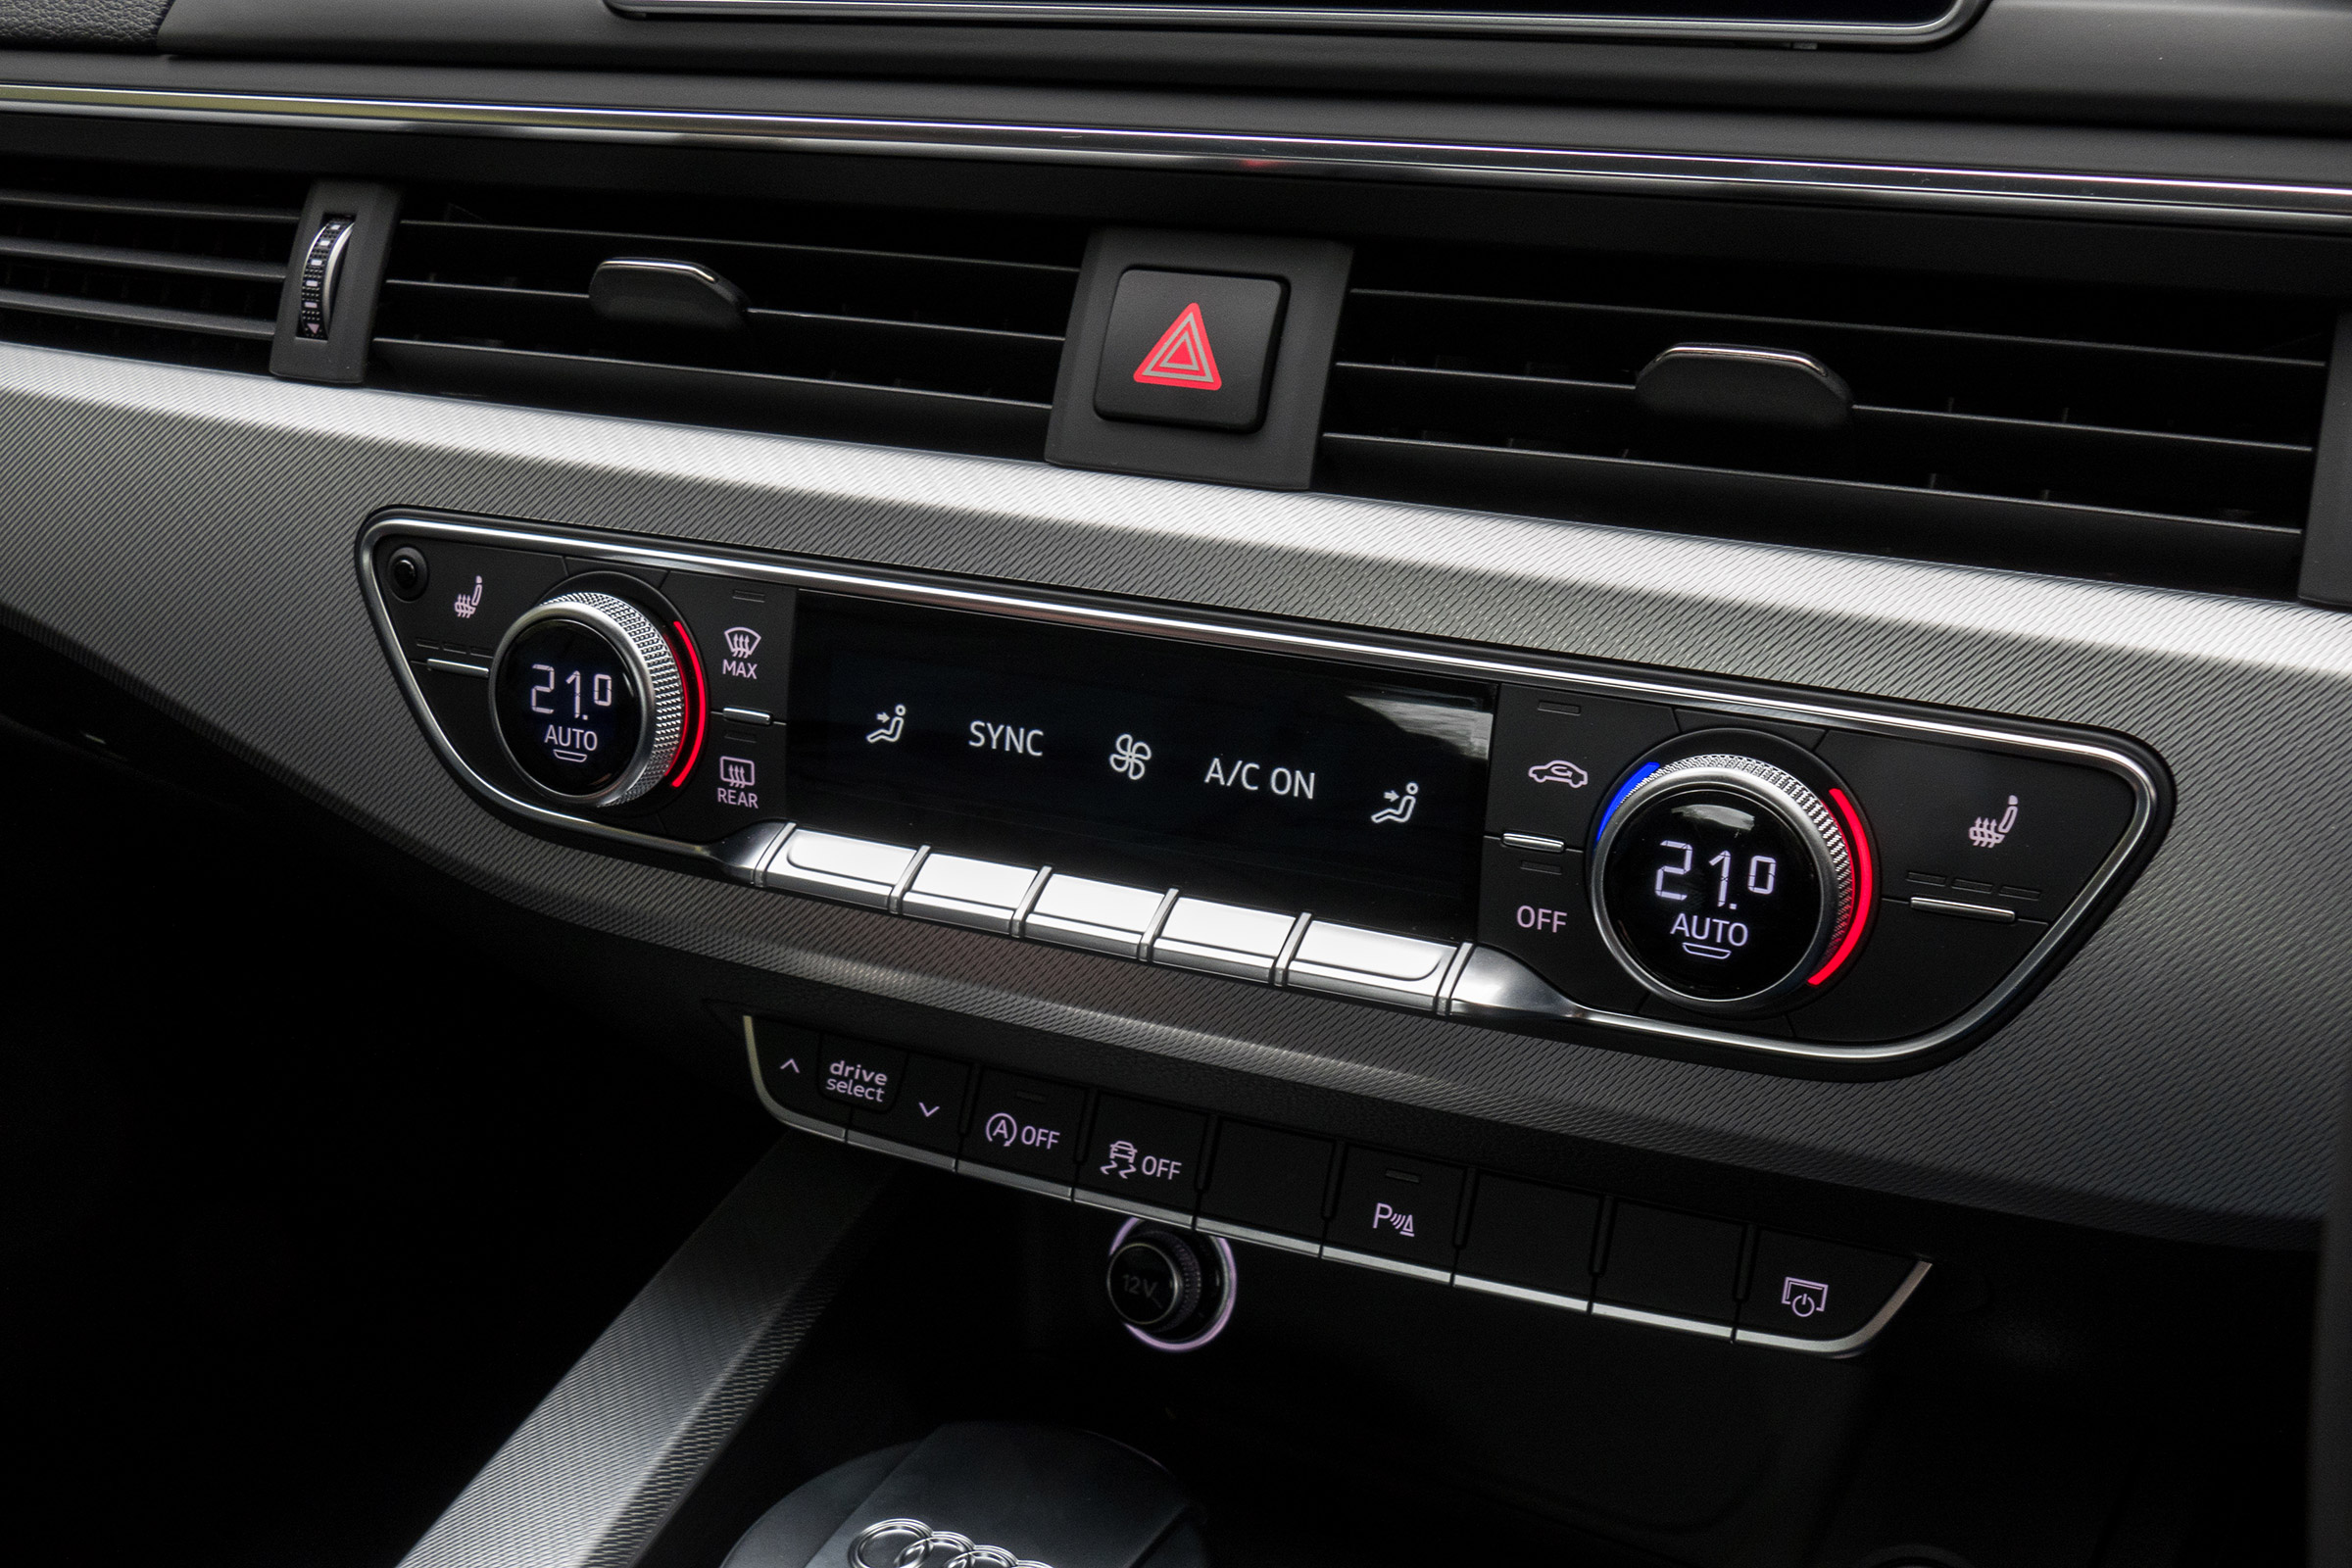 2017 Audi A5 Coupe Interior View Climate Control (Photo 15 of 21)